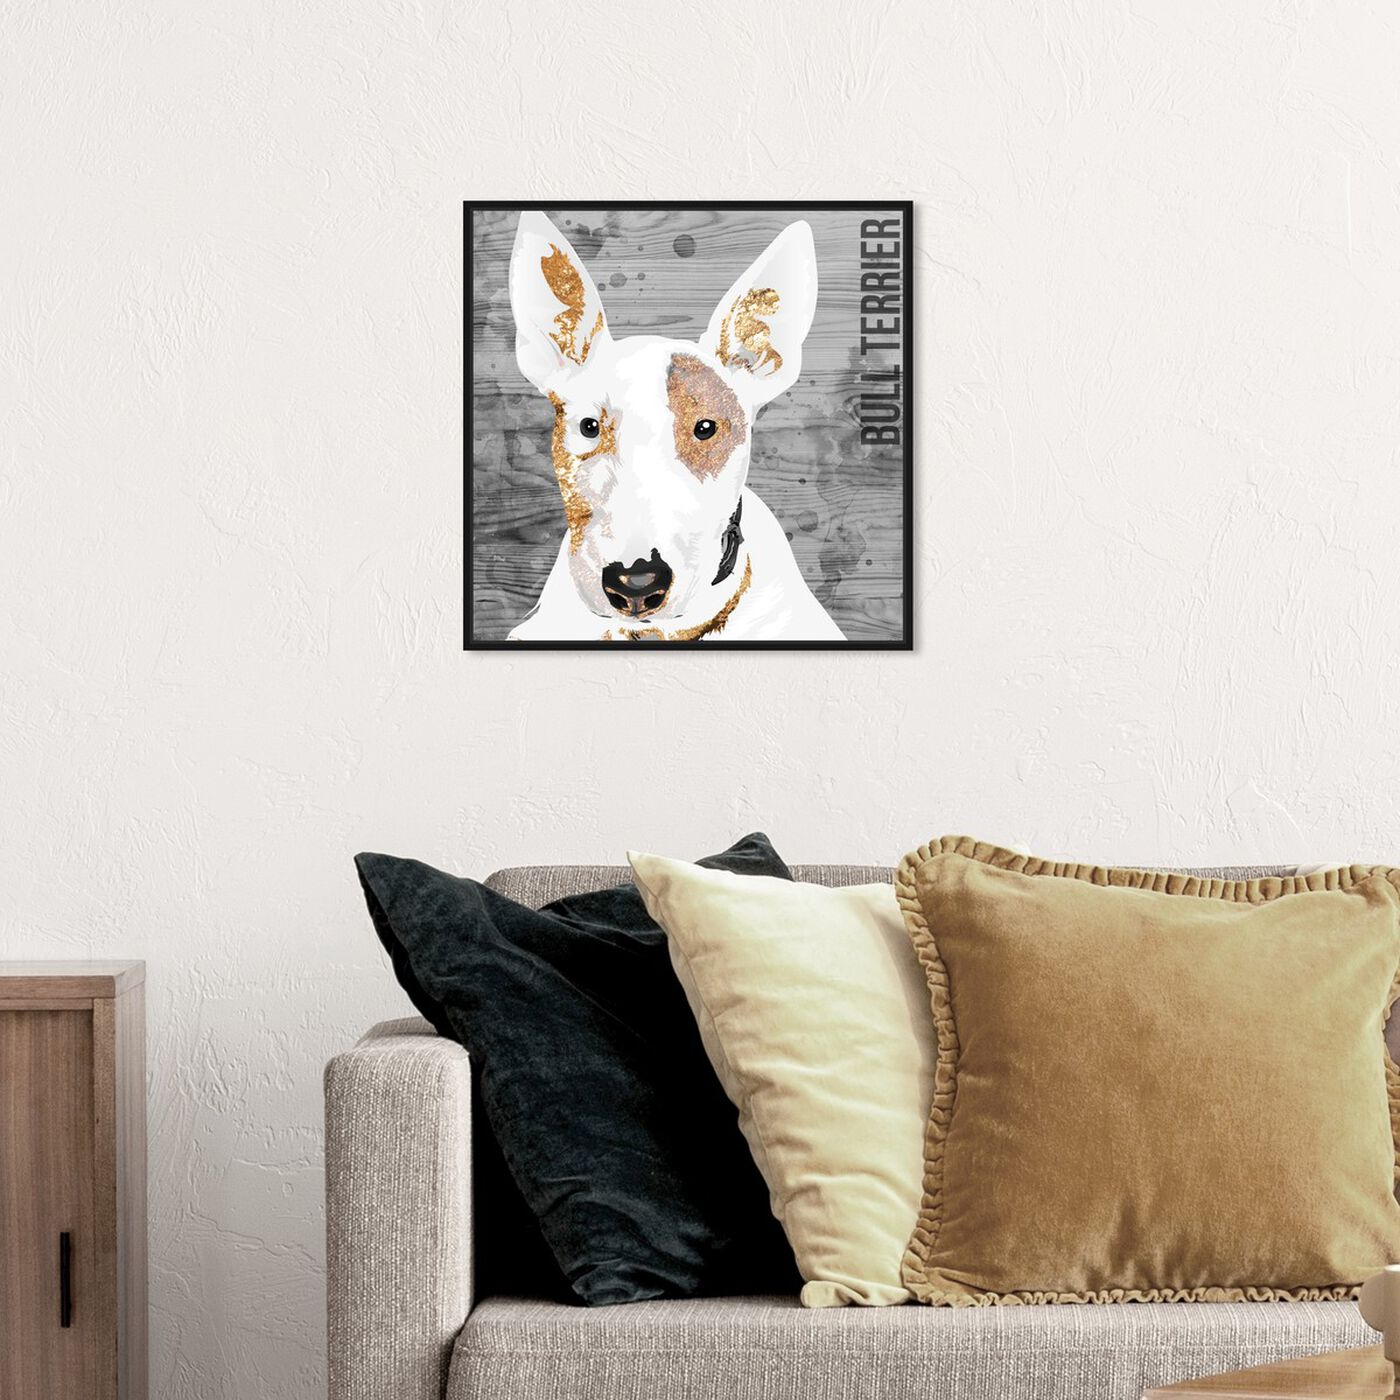 Hanging view of Love My Bull Terrier featuring animals and dogs and puppies art.